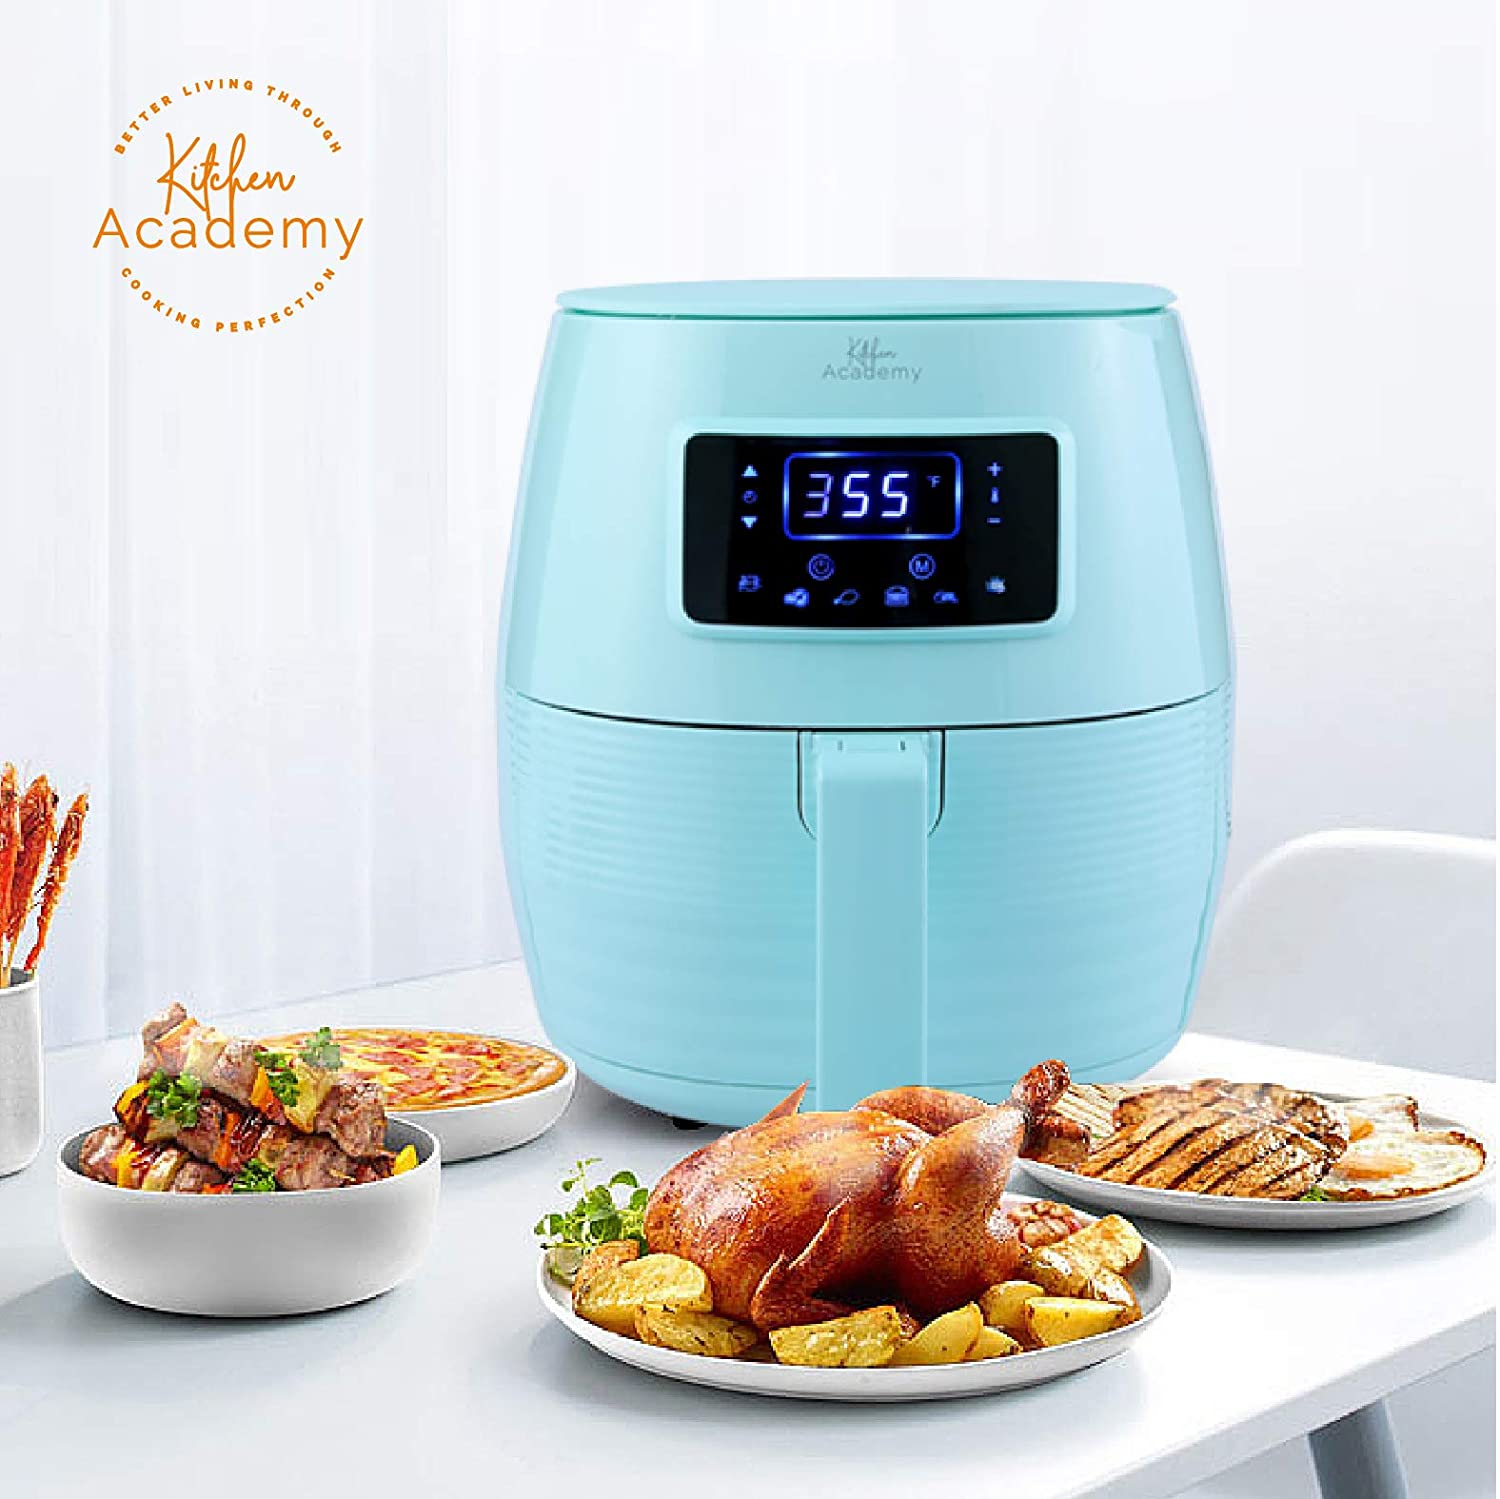 Kitchen Academy Air Fryer (50 Recipes), 5.8 Qt Electric Hot Air Fryers XL Oven Oilless Cooker, 7 Cooking Preset, LED Digital Touchscreen,Nonstick Basket,1 - Year Warranty,ETL/FDA Listed,1700W - Aqua Blue